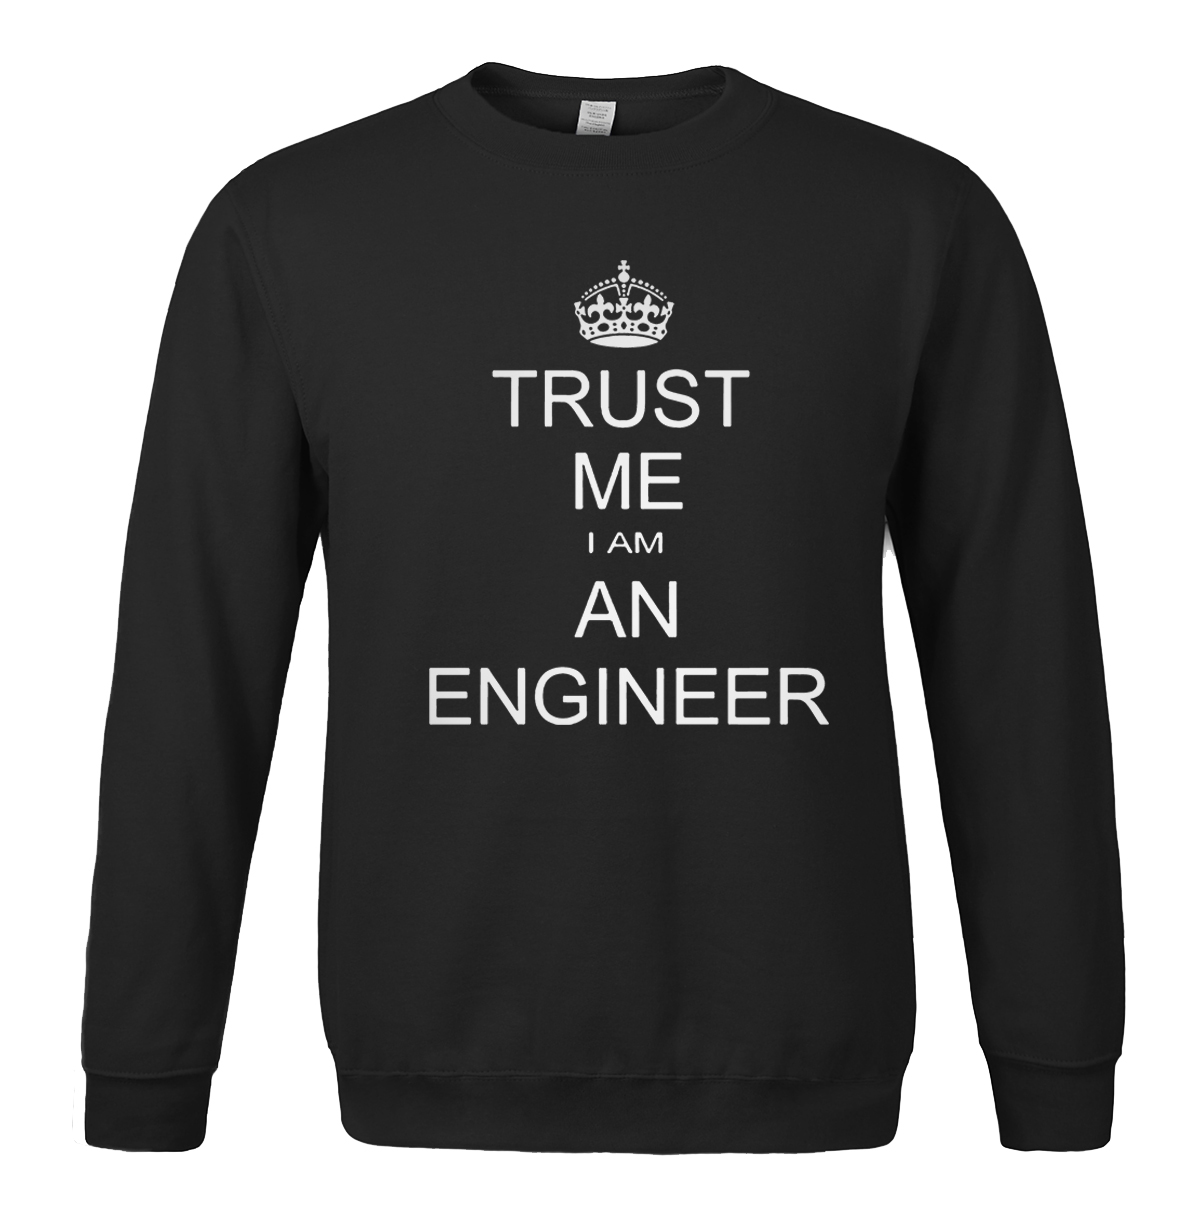 TRUST ME I AM AN ENGINEER printed letter 2018 mens sporstwear spring winter hoody fleece ...